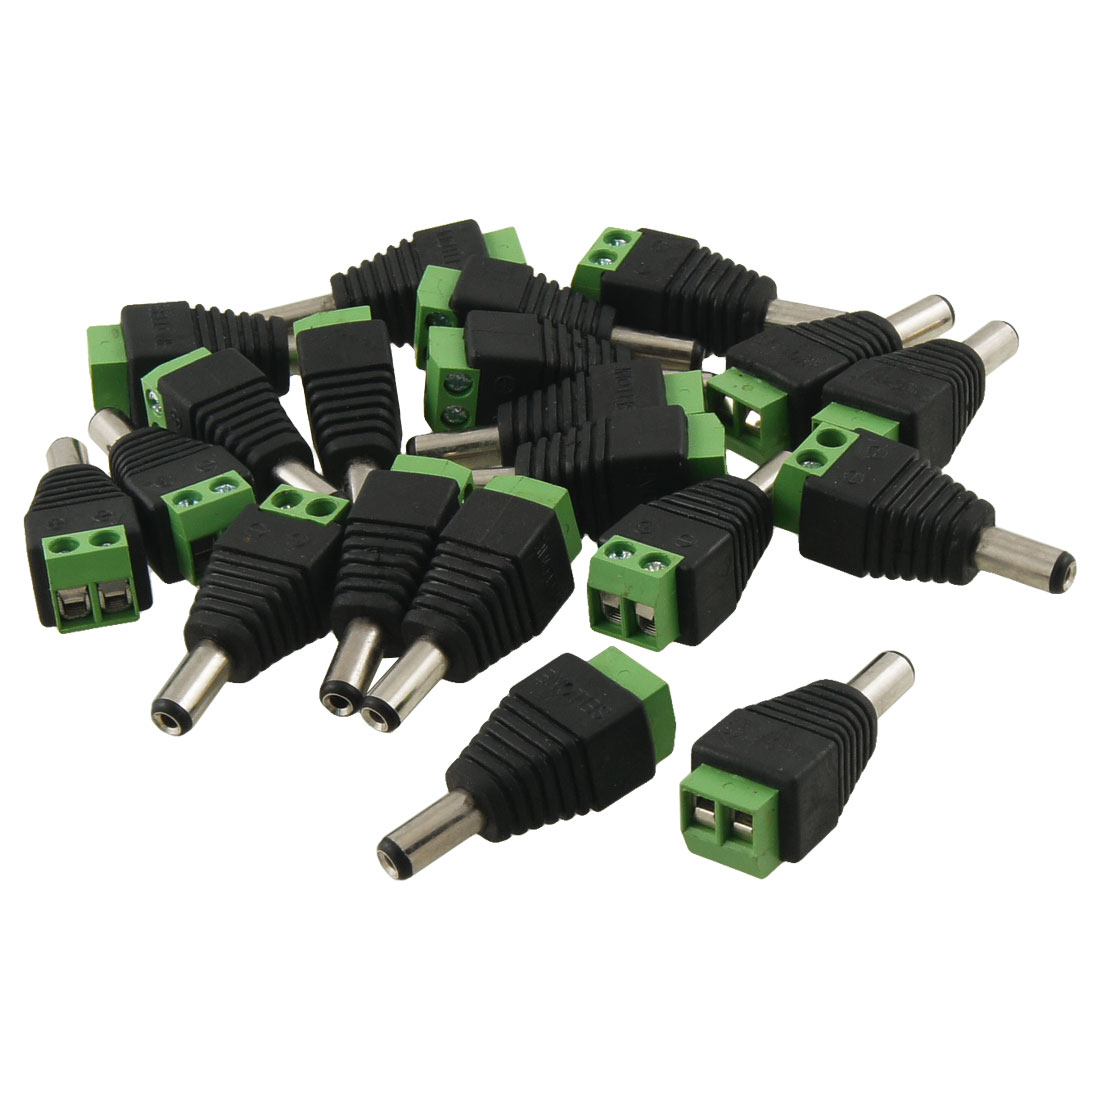 20 Pcs 2.1 x 5.5mm DC Power Male Connector Plug for CCTV Camera